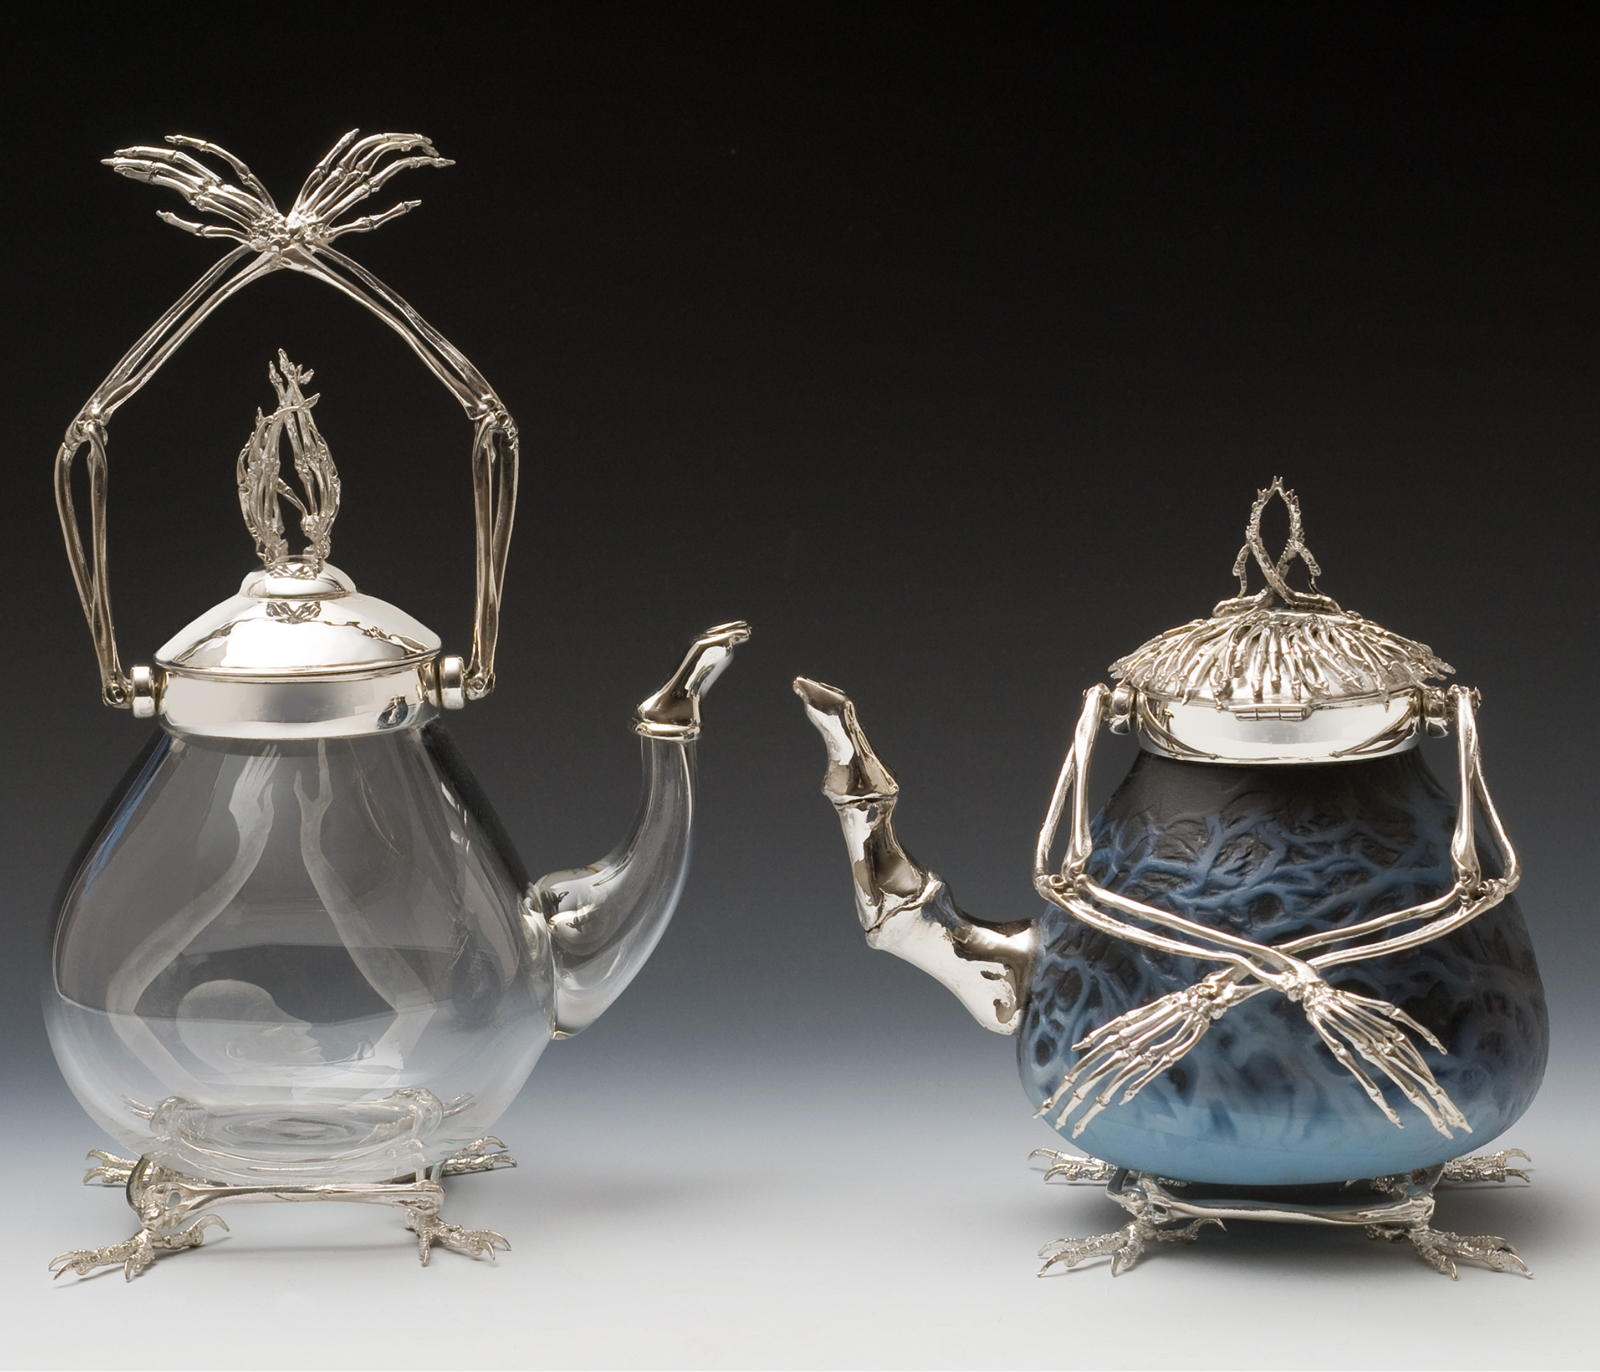 Baba Yaga's Teapots for Light and Dark Spells by Wendy Yothers.